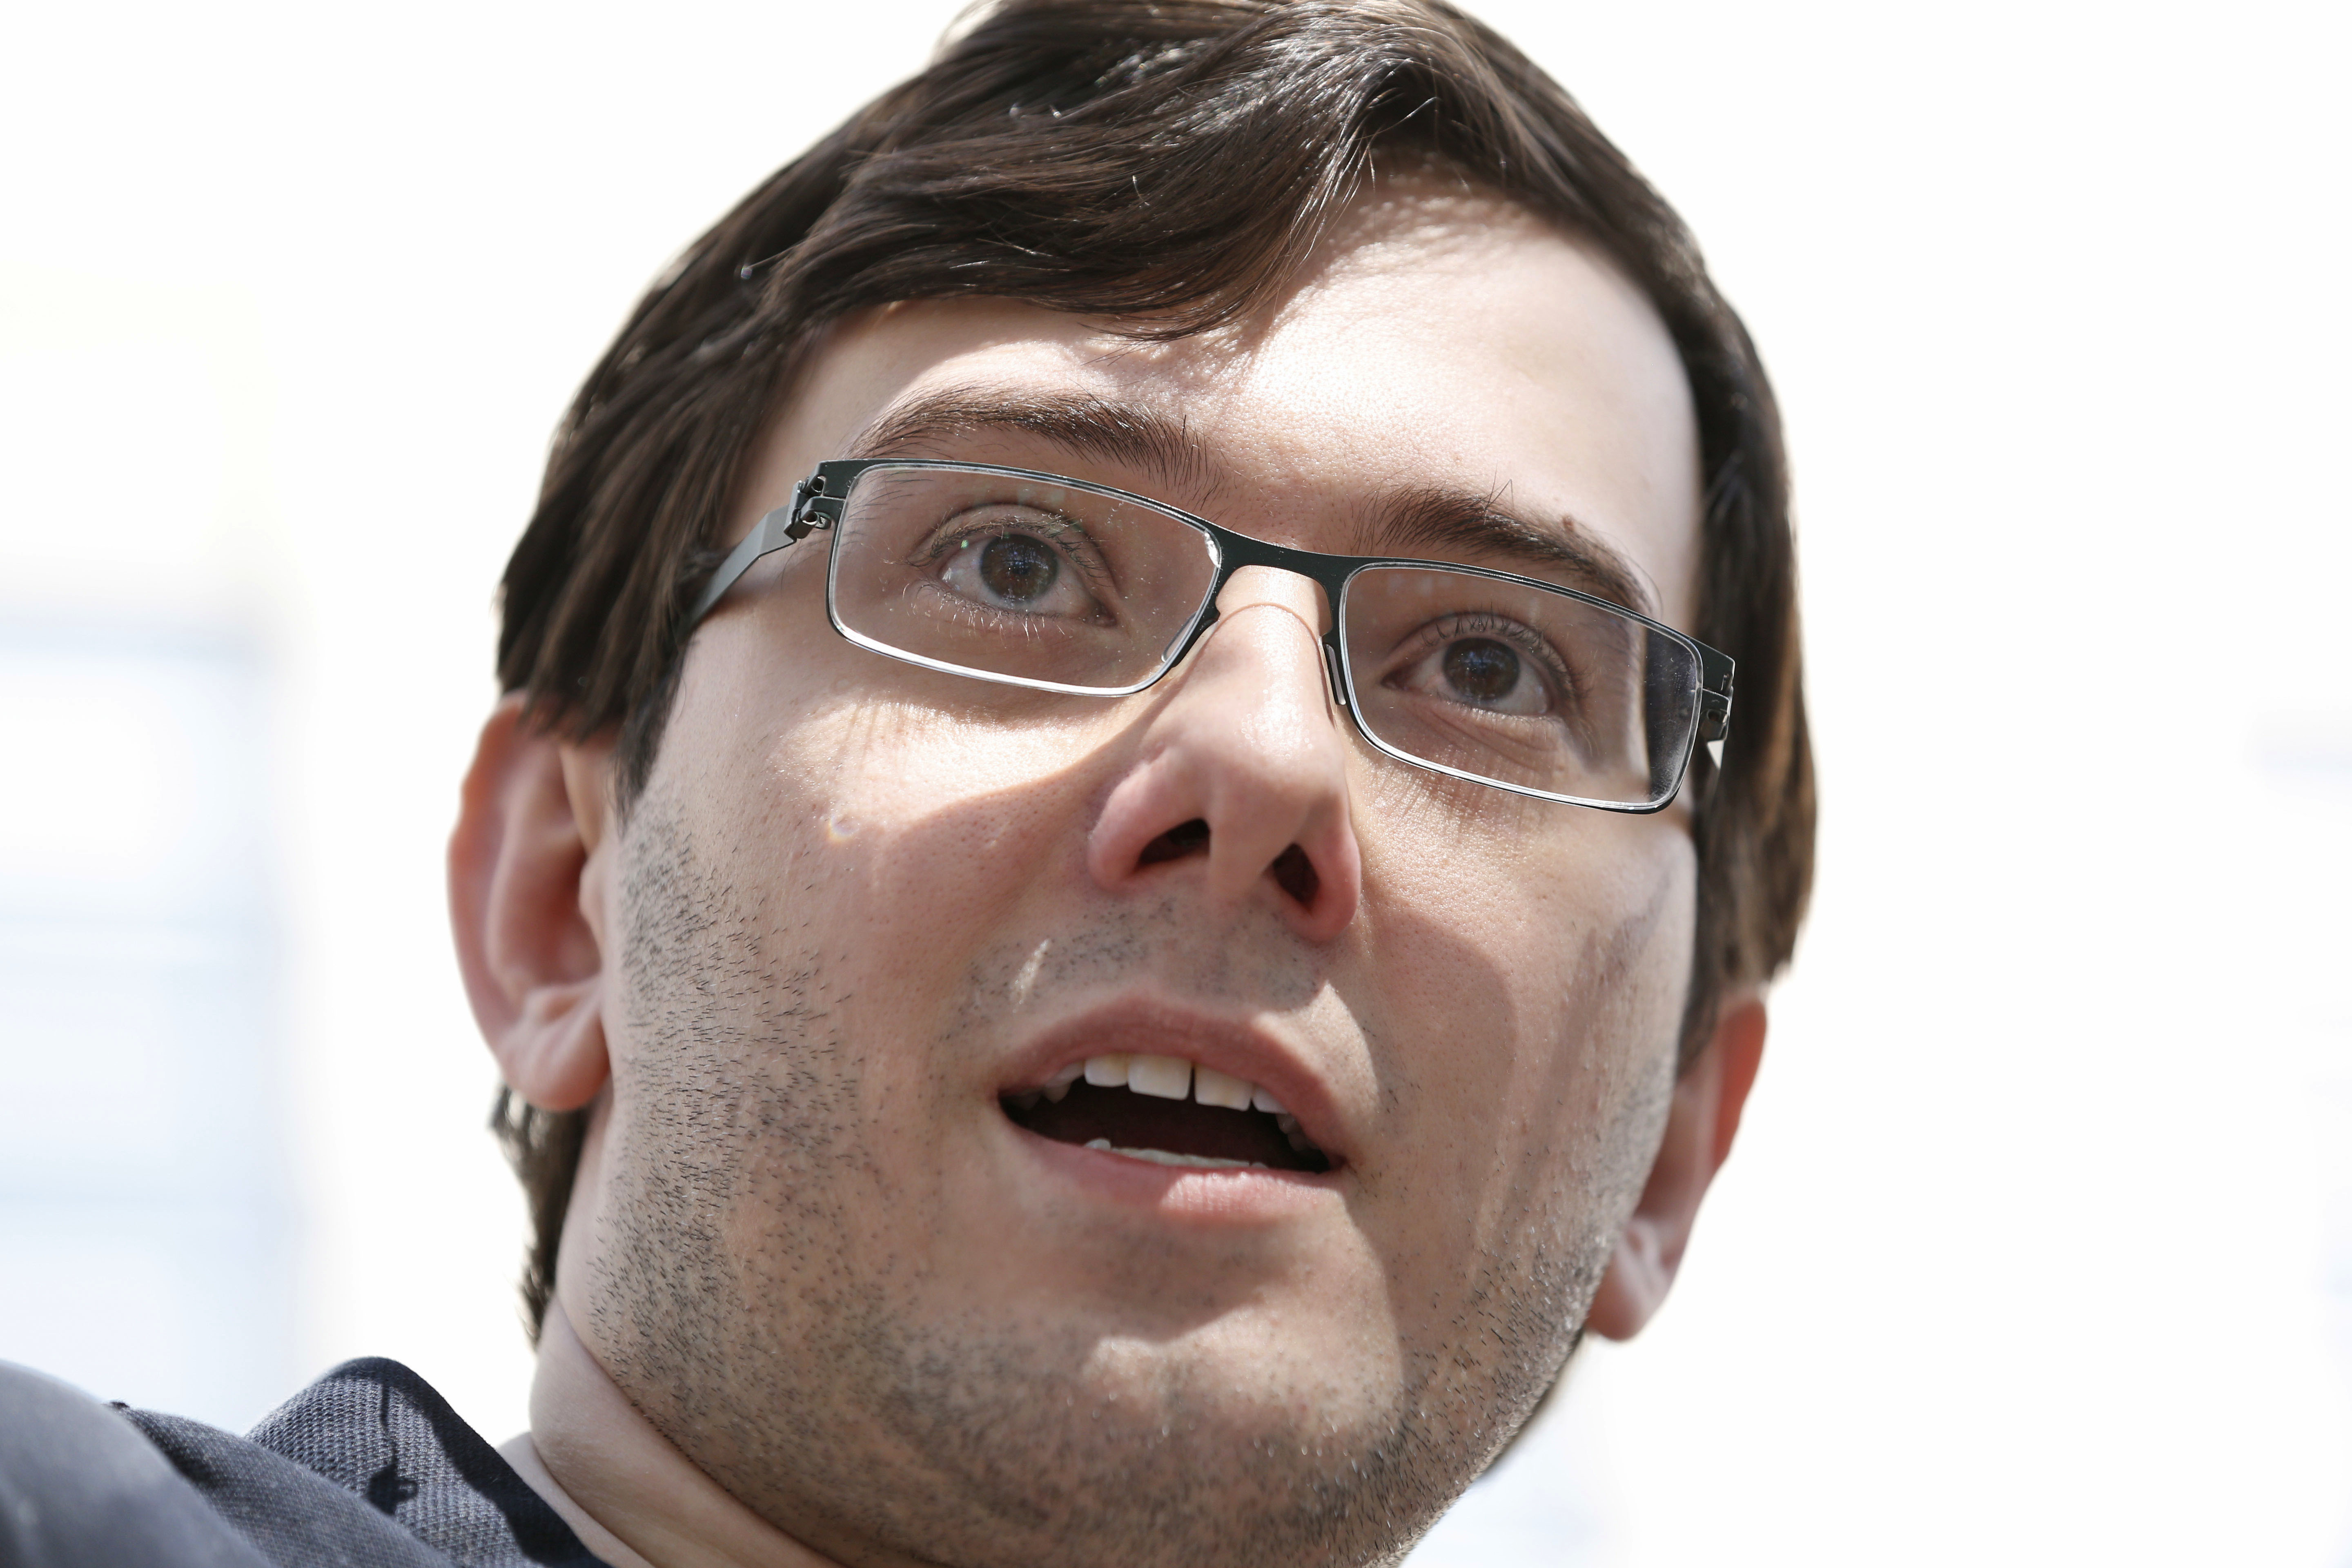 NY, feds sue Pharma Bro for scheme to keep drug price up